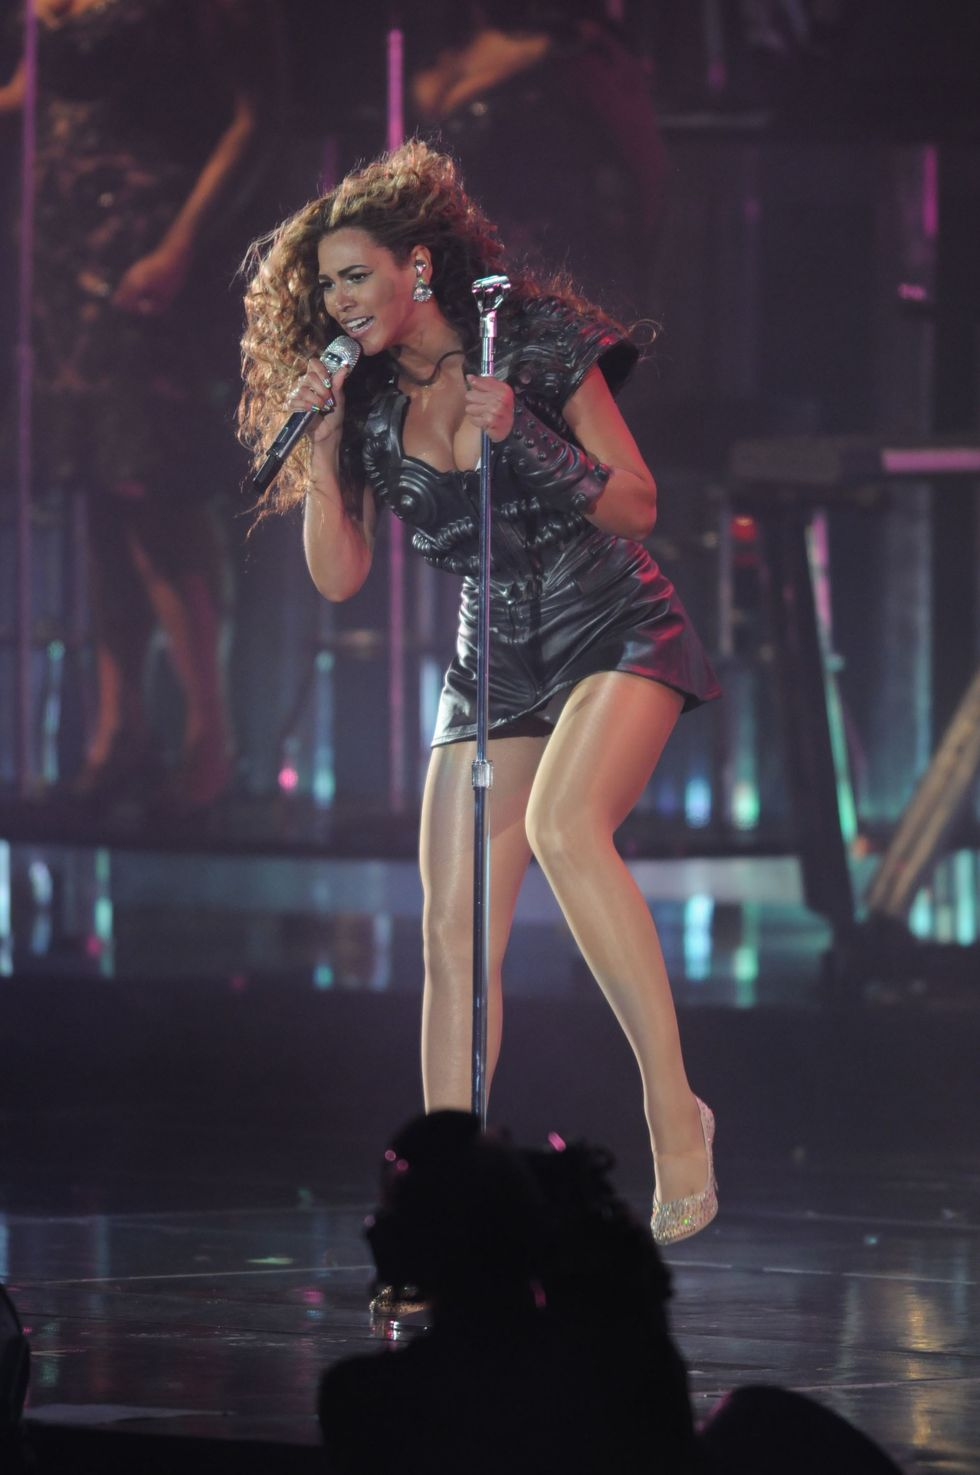 beyonce-knowles-performs-live-in-concert-at-the-arco-arena-01